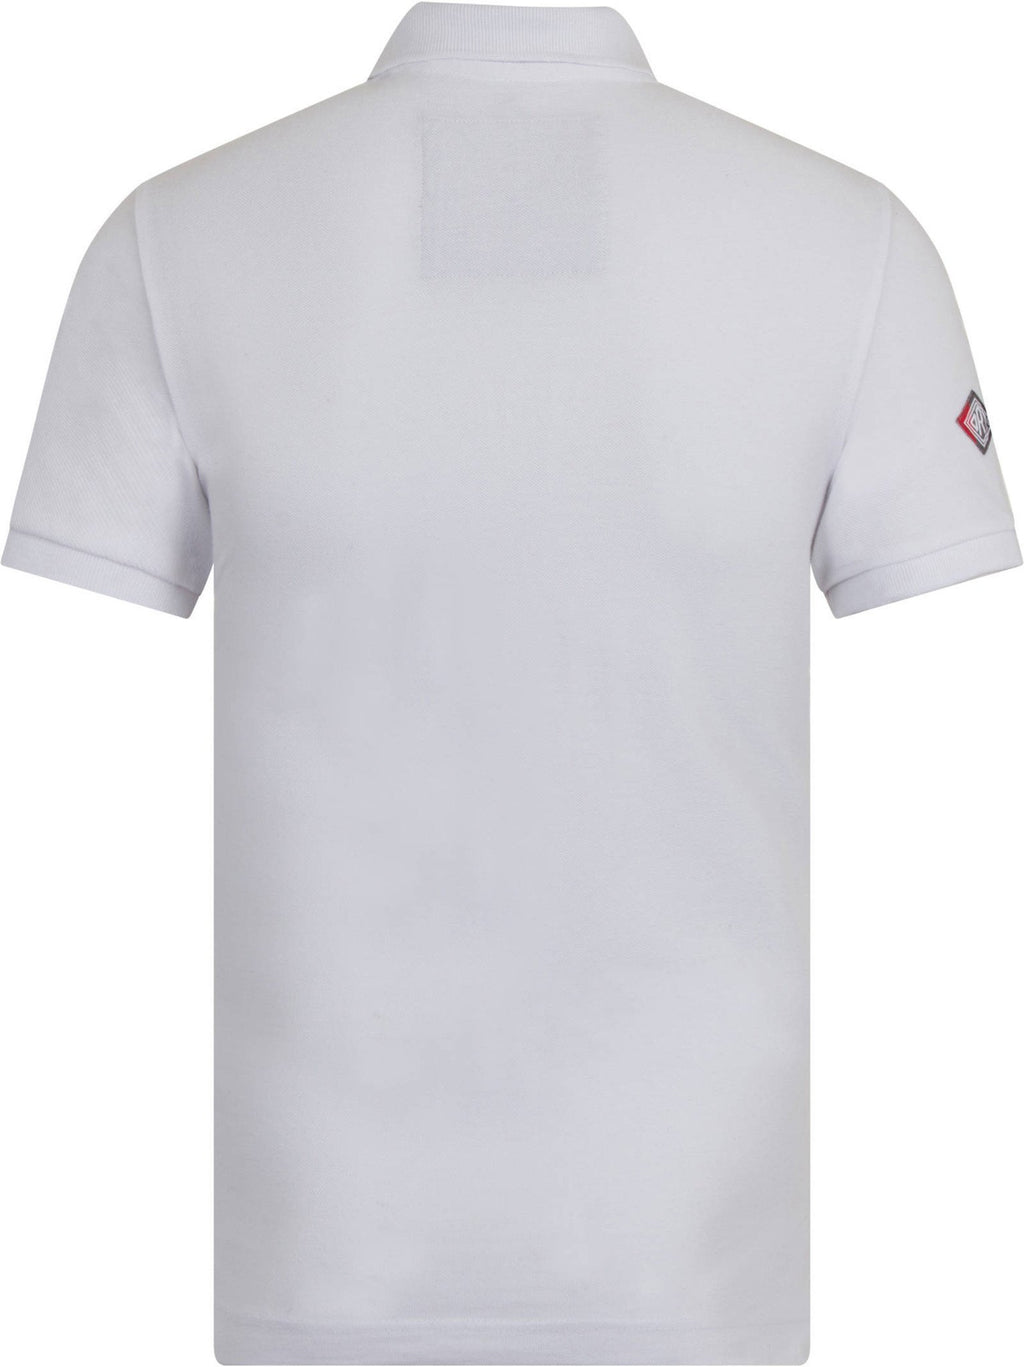 Superdry Classic Pique Polo Shirt White